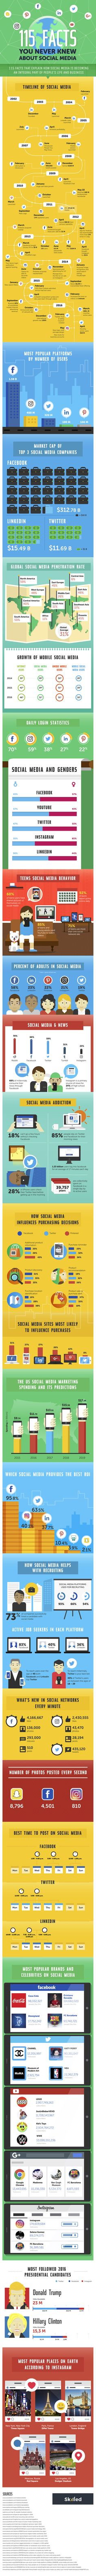 115 Must Know Facts about Social Media | GreenBook